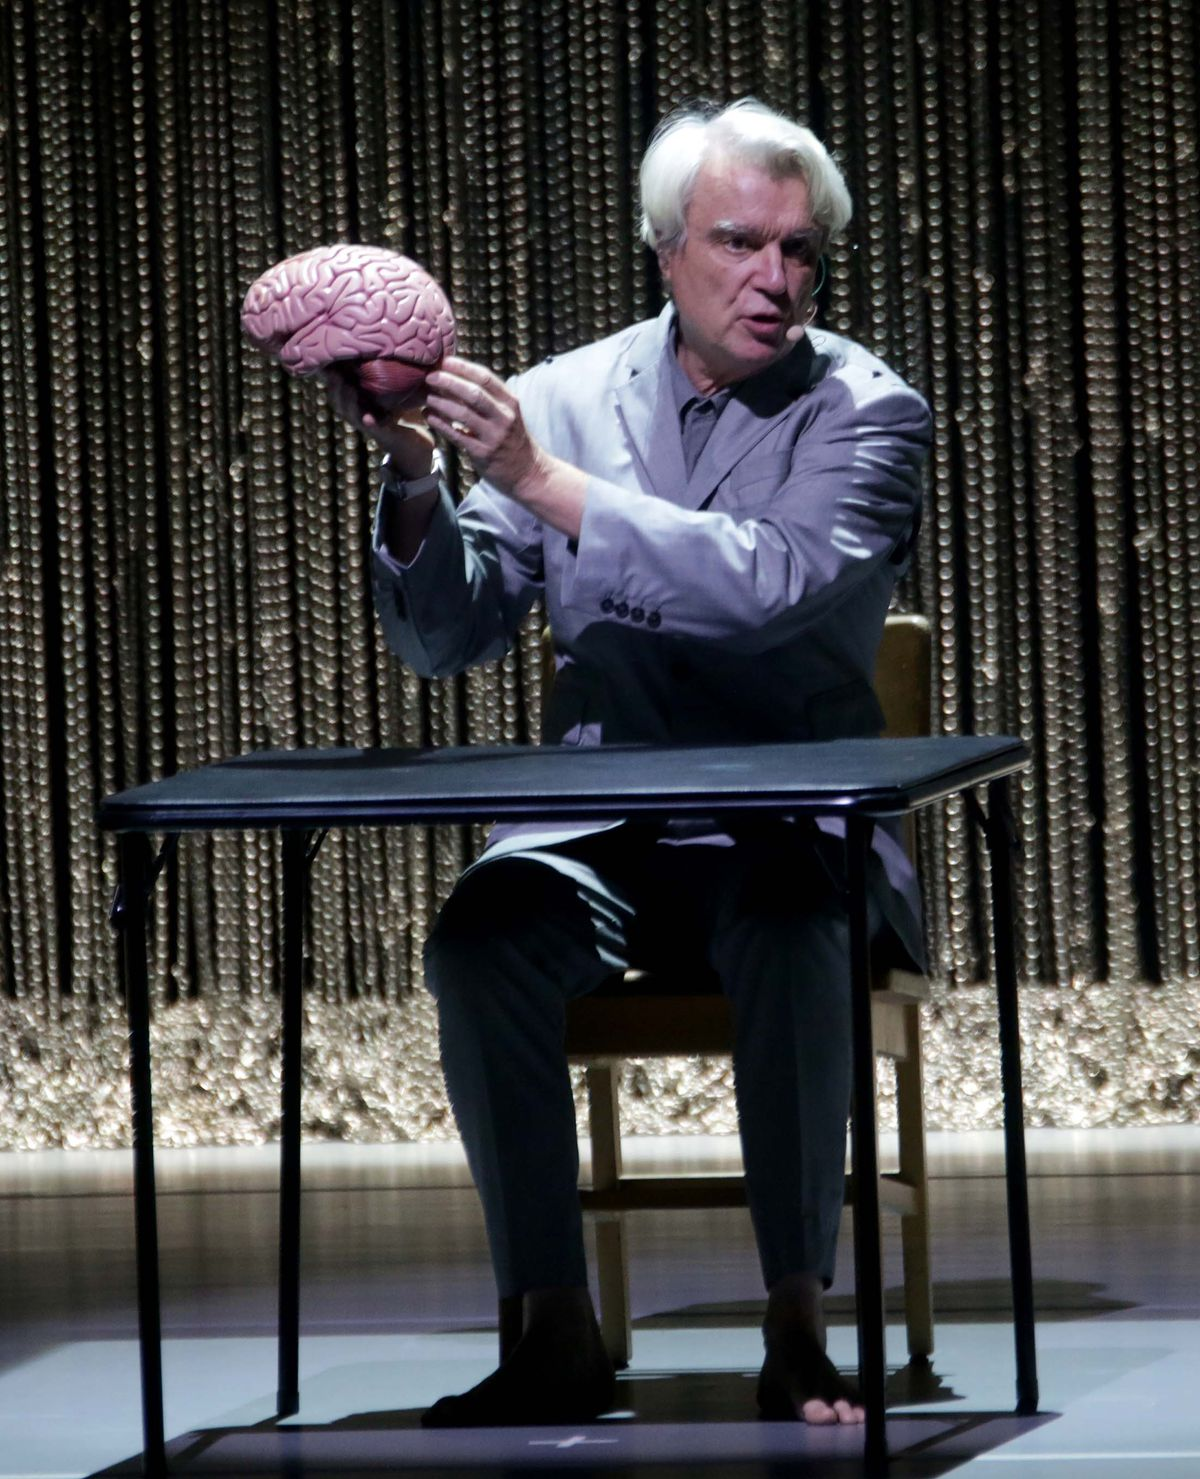 David Byrne with brain opening with Here from American Utopia. Pictures by: Andy Shaw